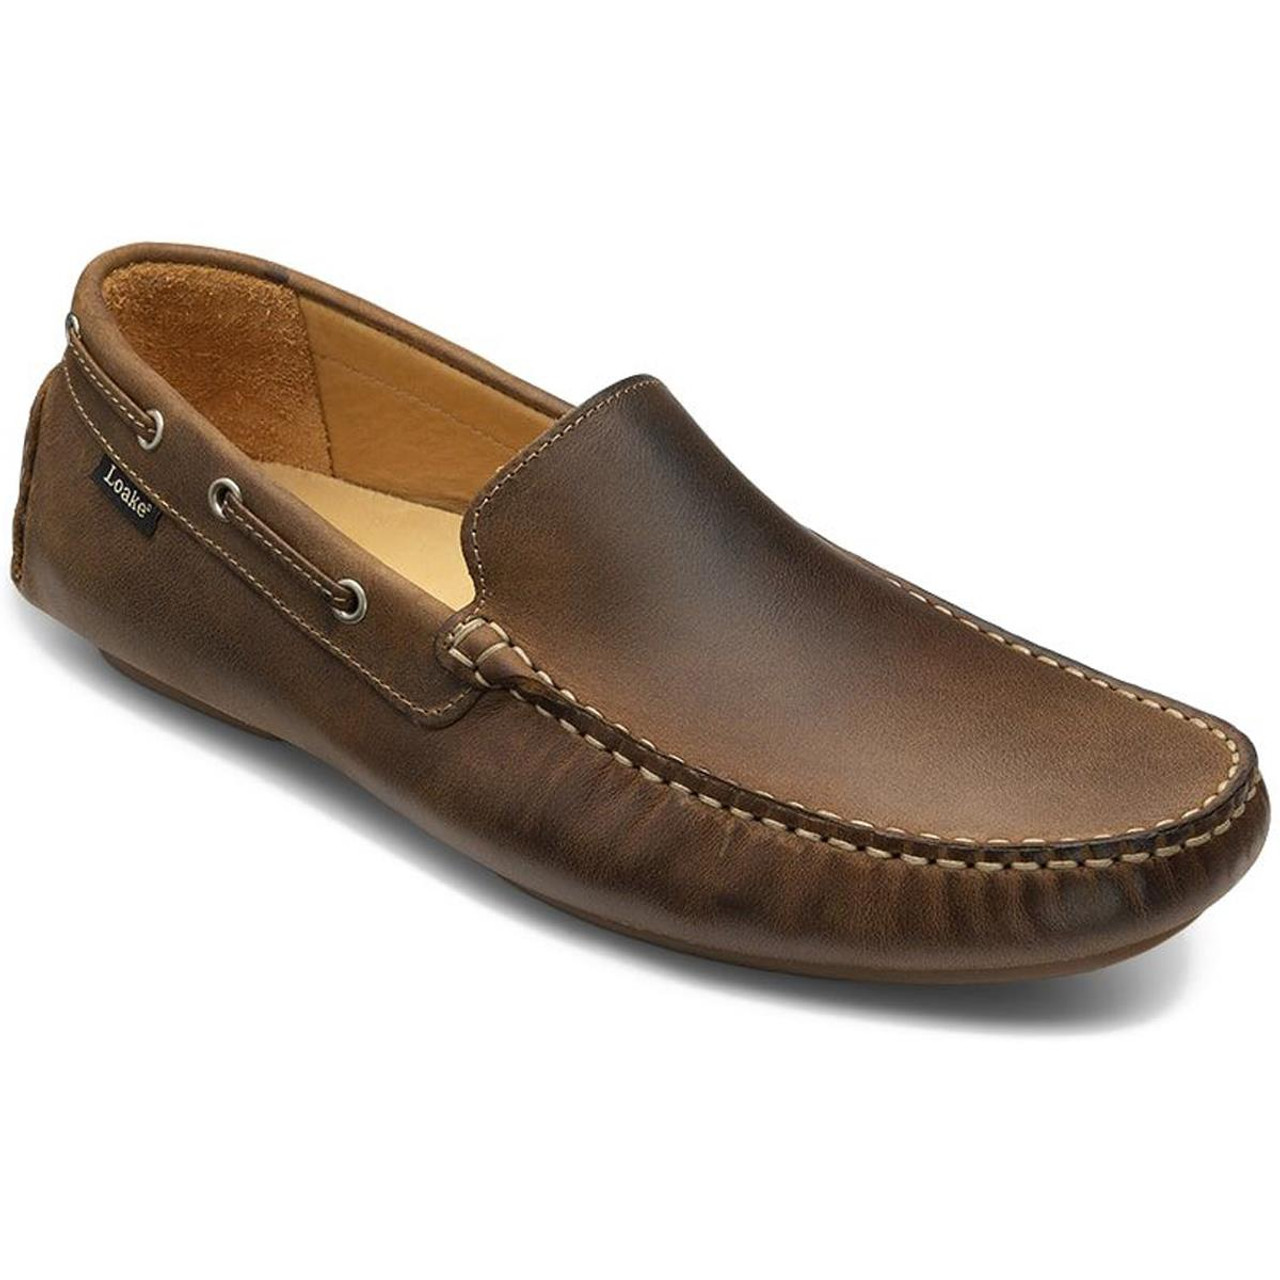 Brown Loake Mens Donington Moccasins Shoes